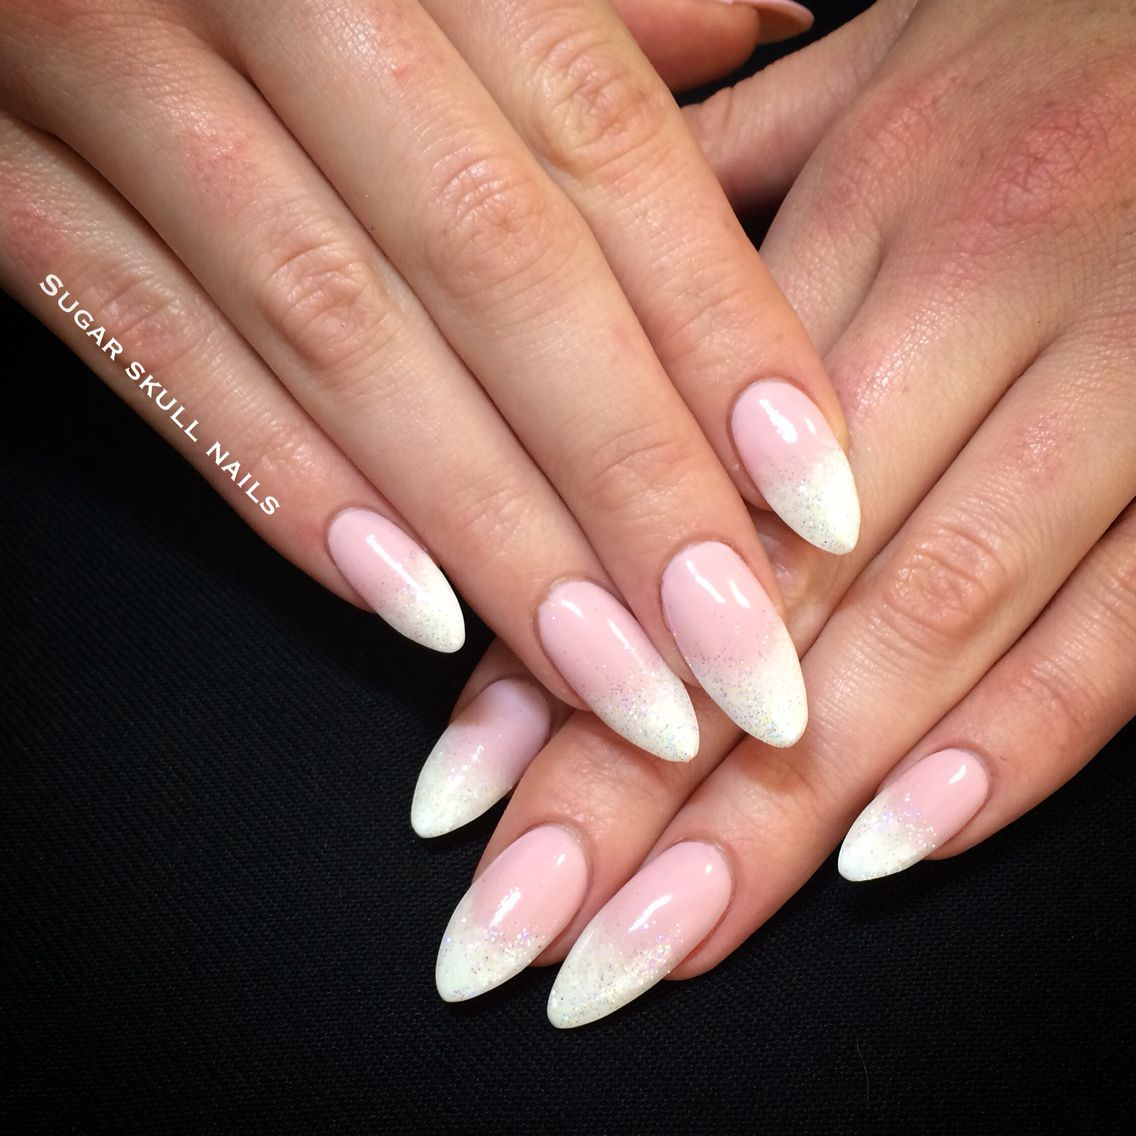 Acrylic almond sculptures with graded French overlay | Nails ...